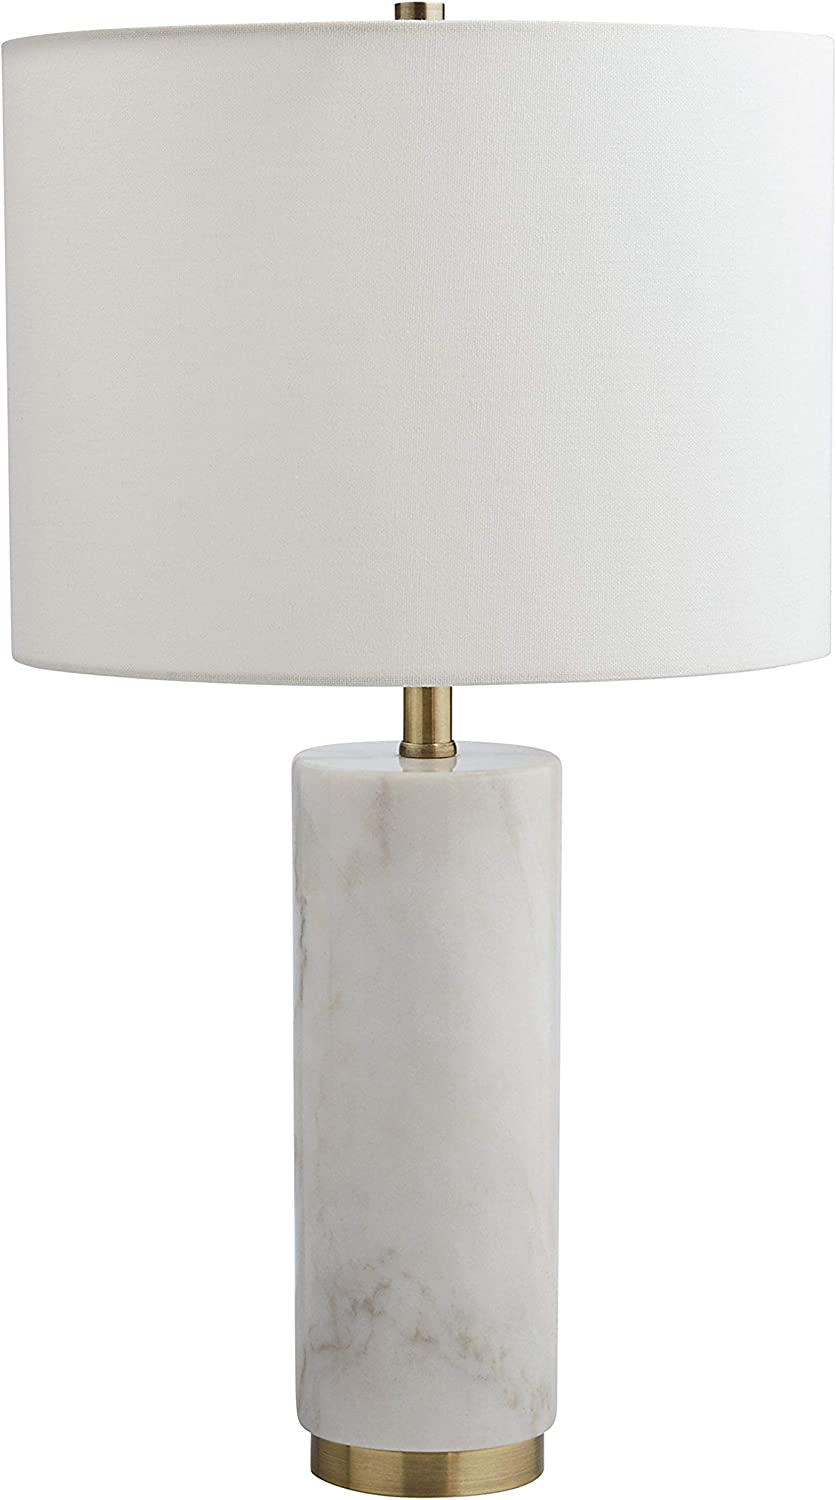 Rivet Modern Marble Table Lamp, 22 H, With Bulb, White with Linen Shade